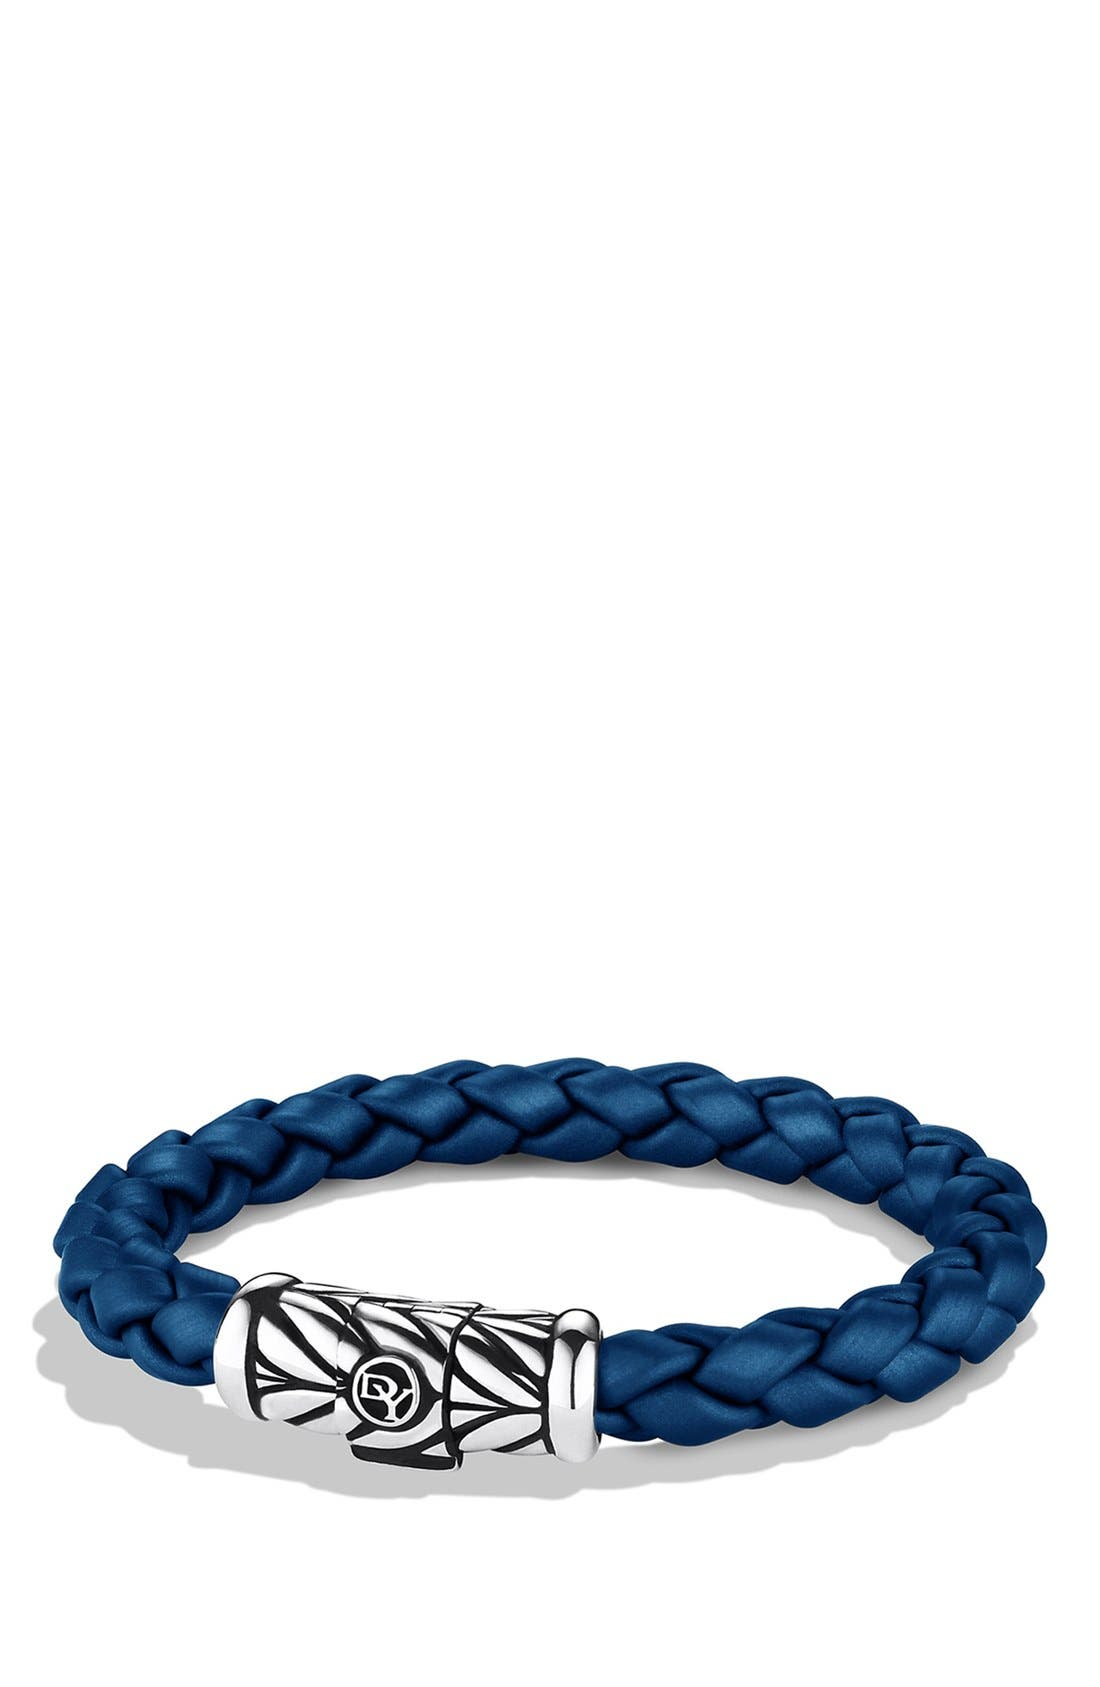 David Yurman 'Chevron' Bracelet